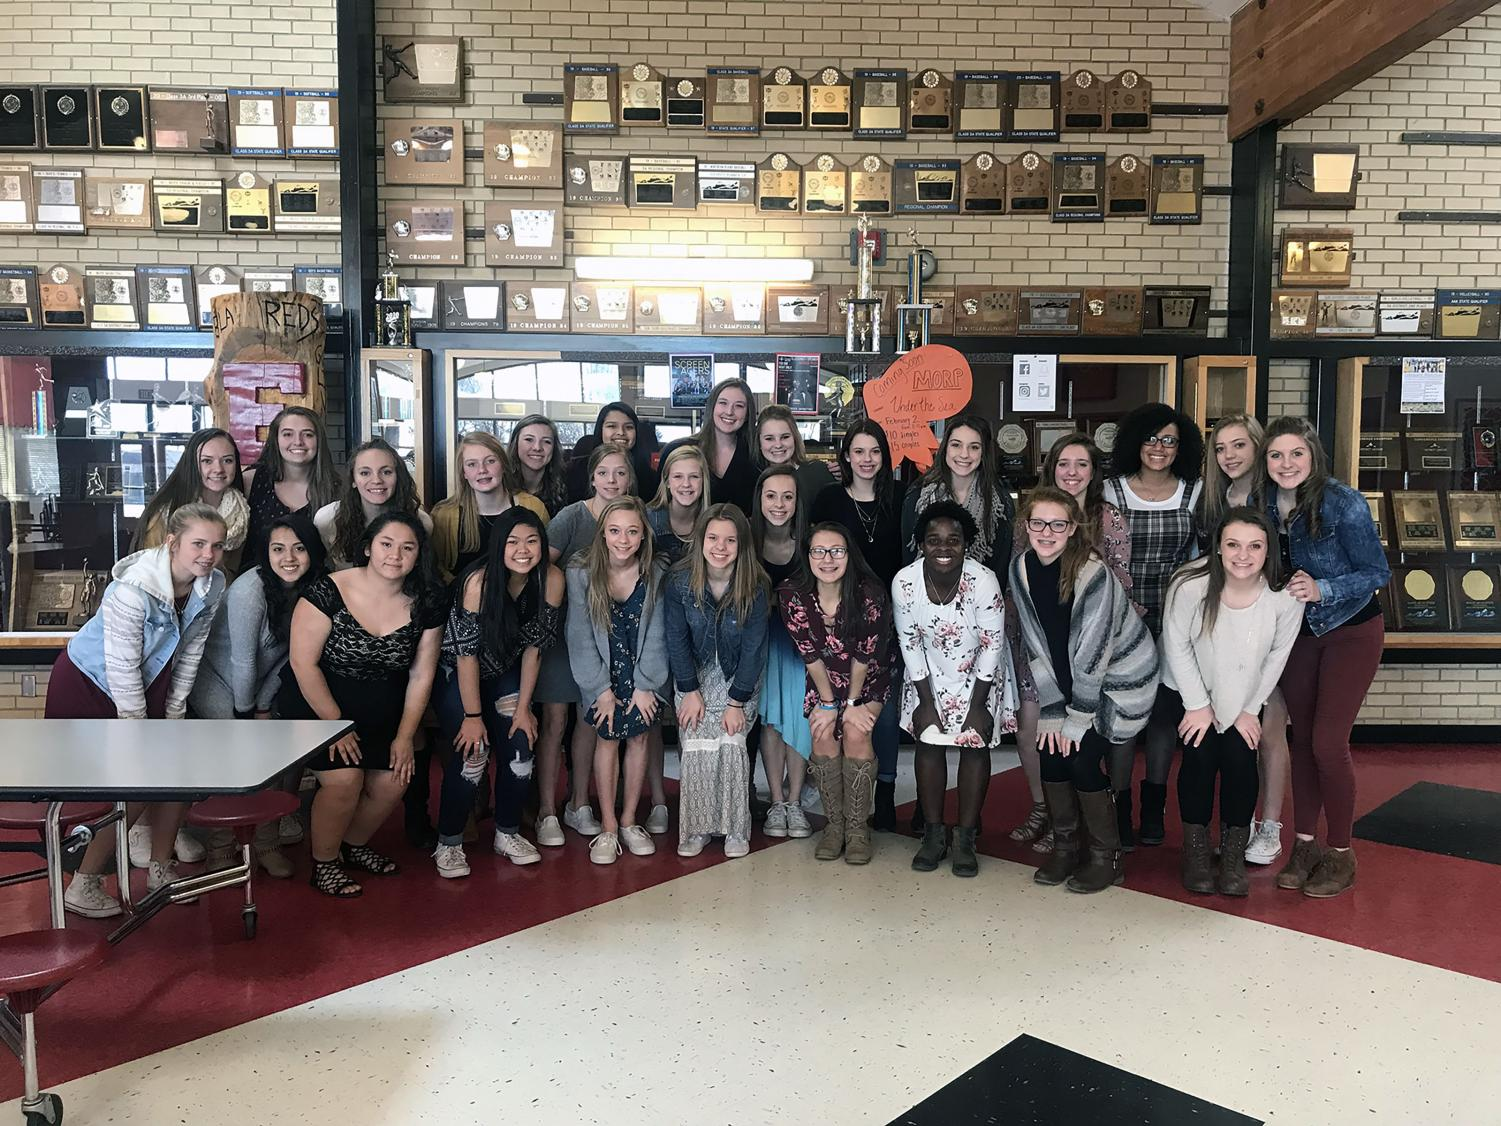 Girl's Basketball team members take a photo before heading to University.